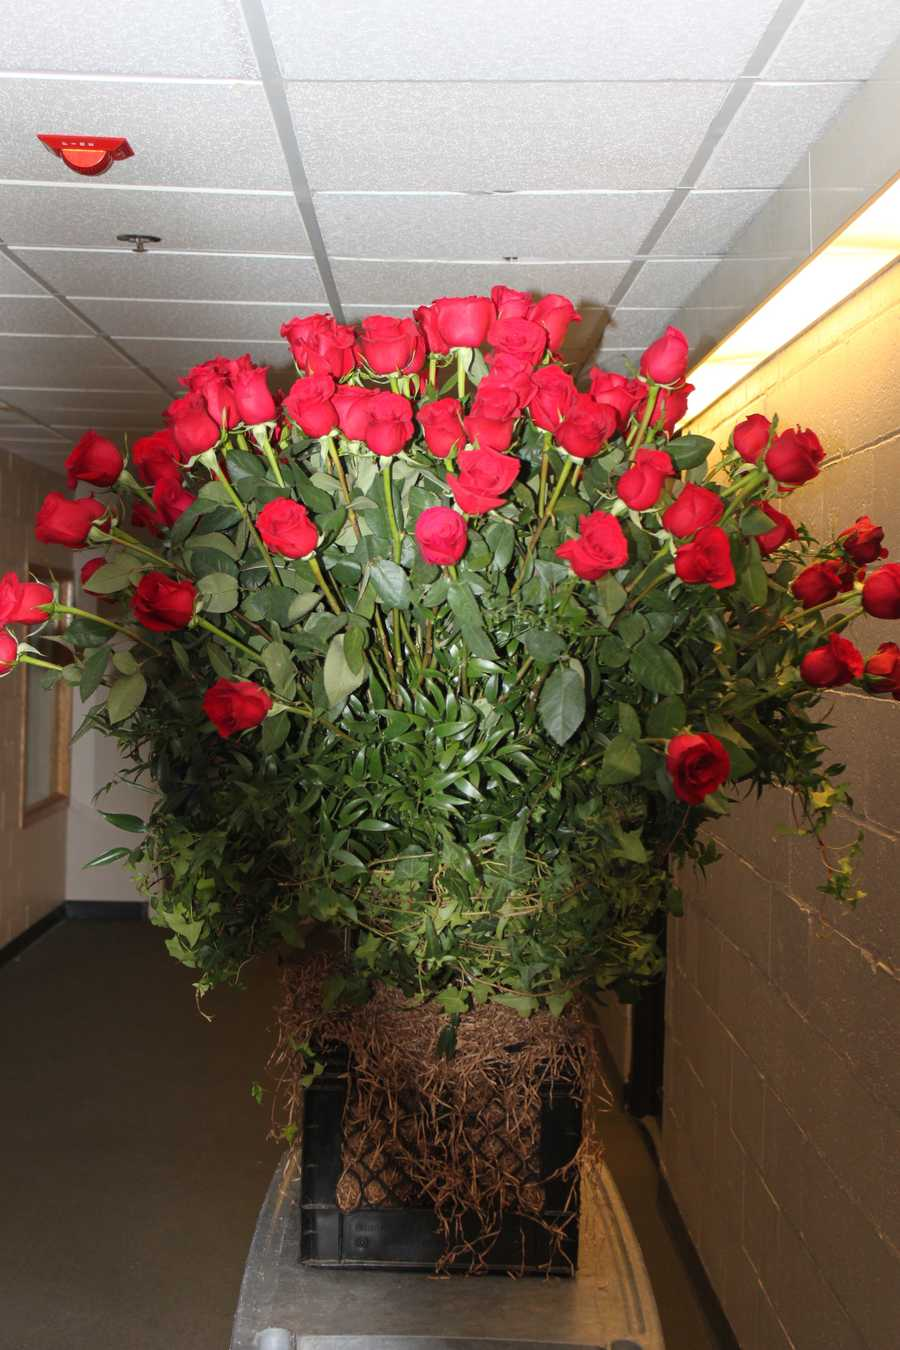 Dorothy Krysiuk's fiance surprised her on Valentine's Day with dozens of roses in one massive bouquet.